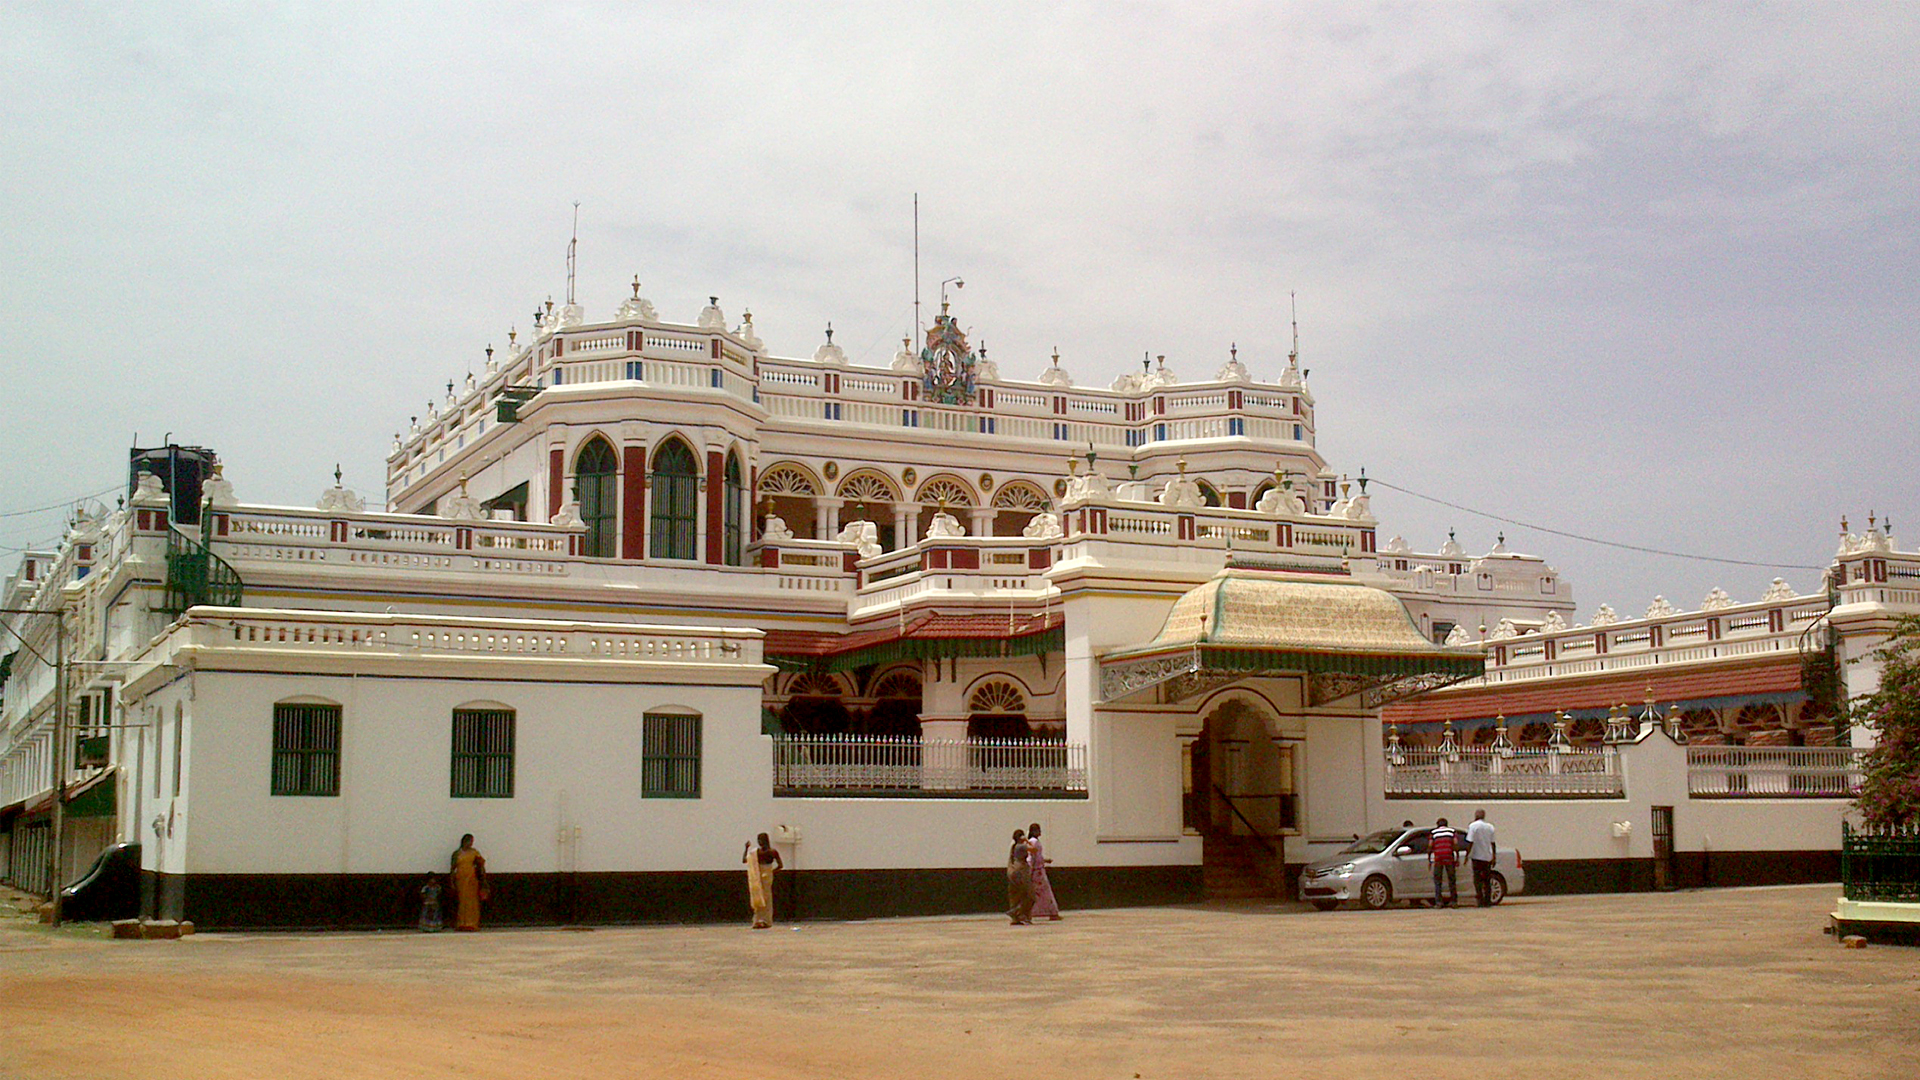 Chettinad: Old Palaces, Spicy Food, And Off The Tourist Radar